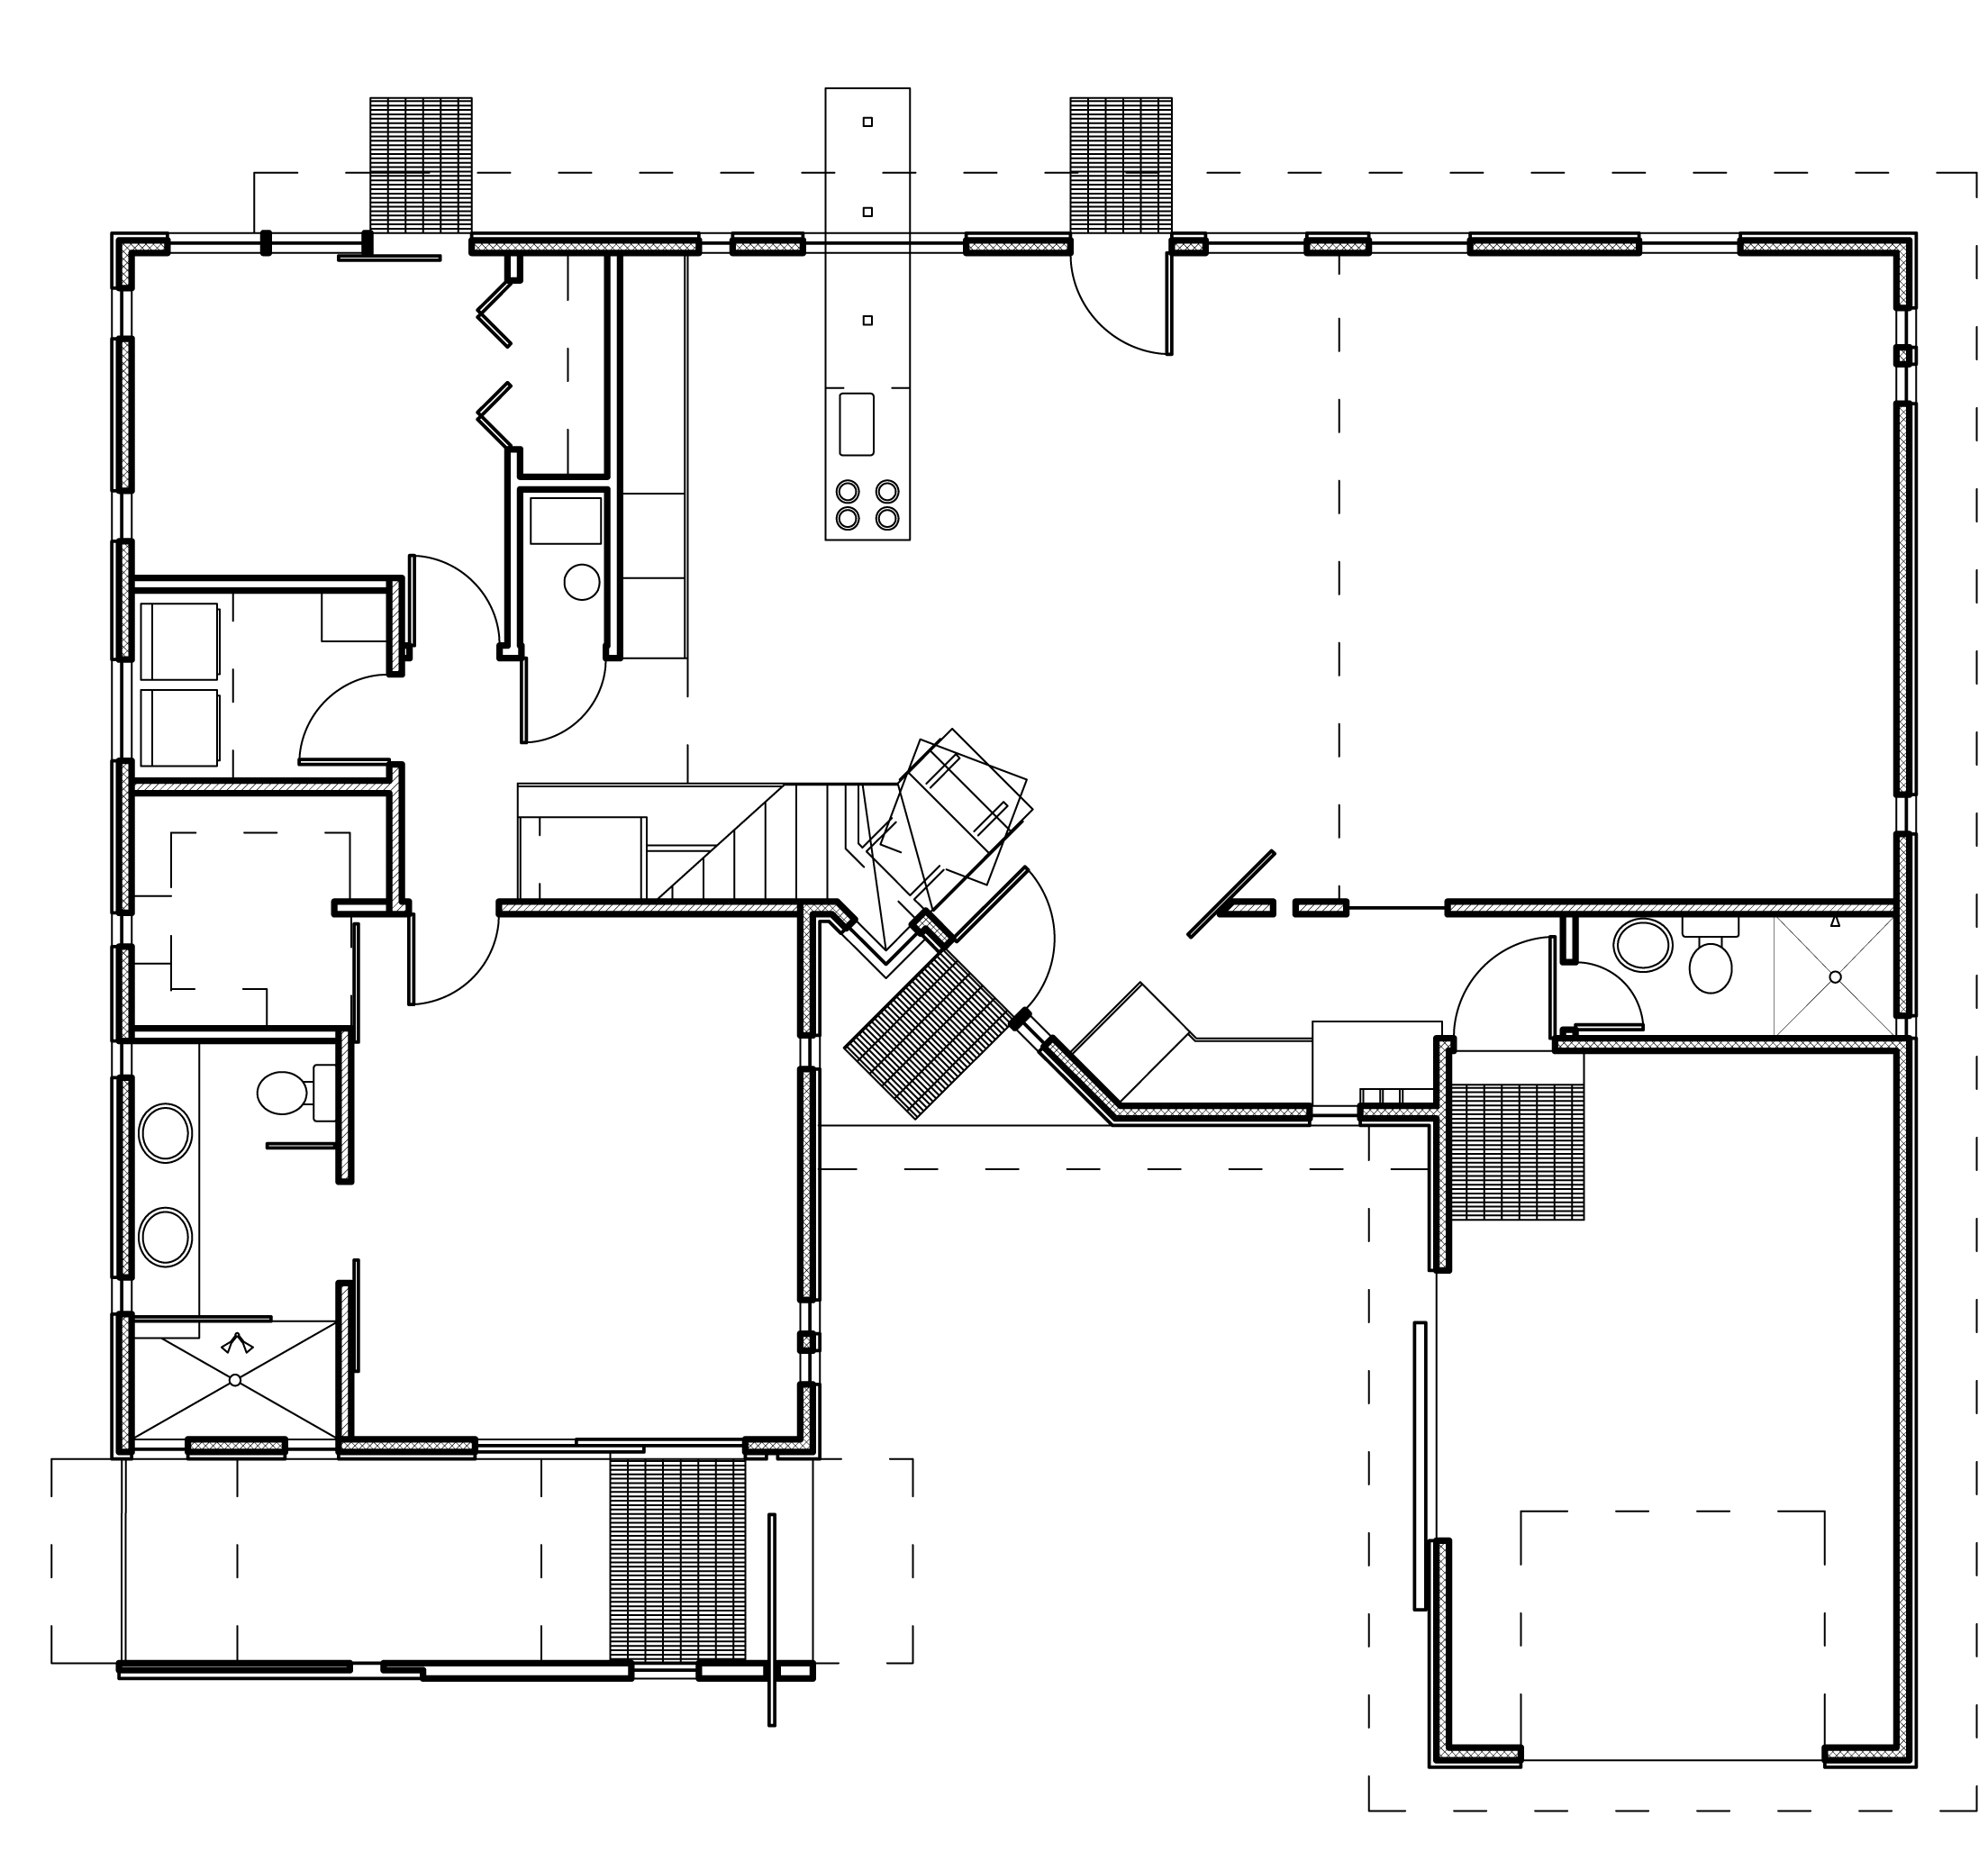 Modern house plans contemporary home designs floor plan 03 for Contemporary home plans free